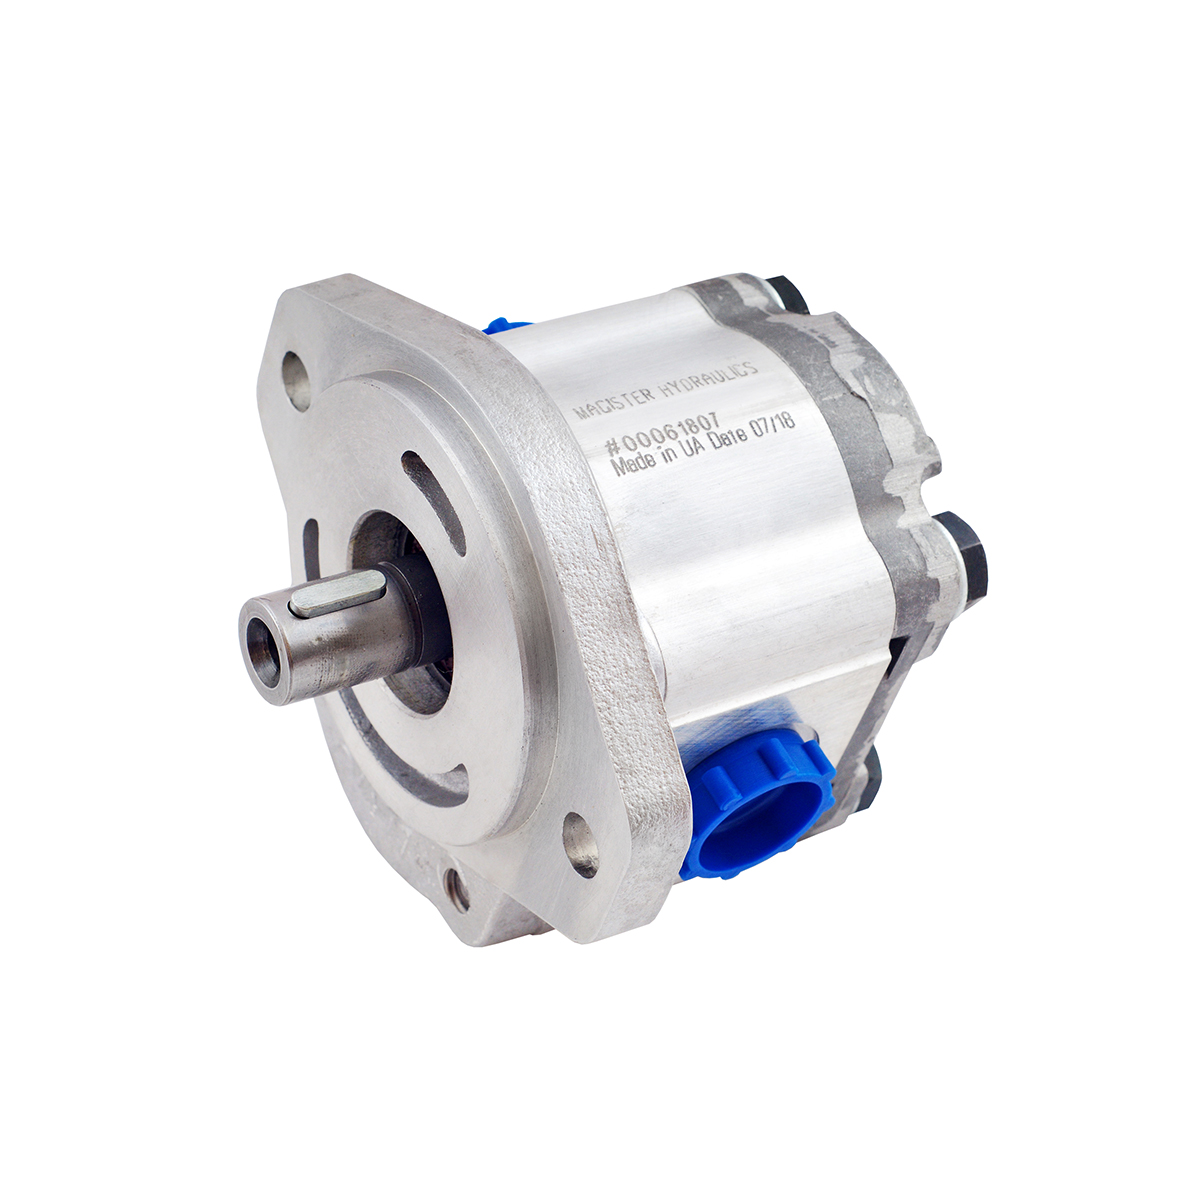 1.16 CID hydraulic gear pump, 7/8 keyed shaft clockwise gear pump | Magister Hydraulics